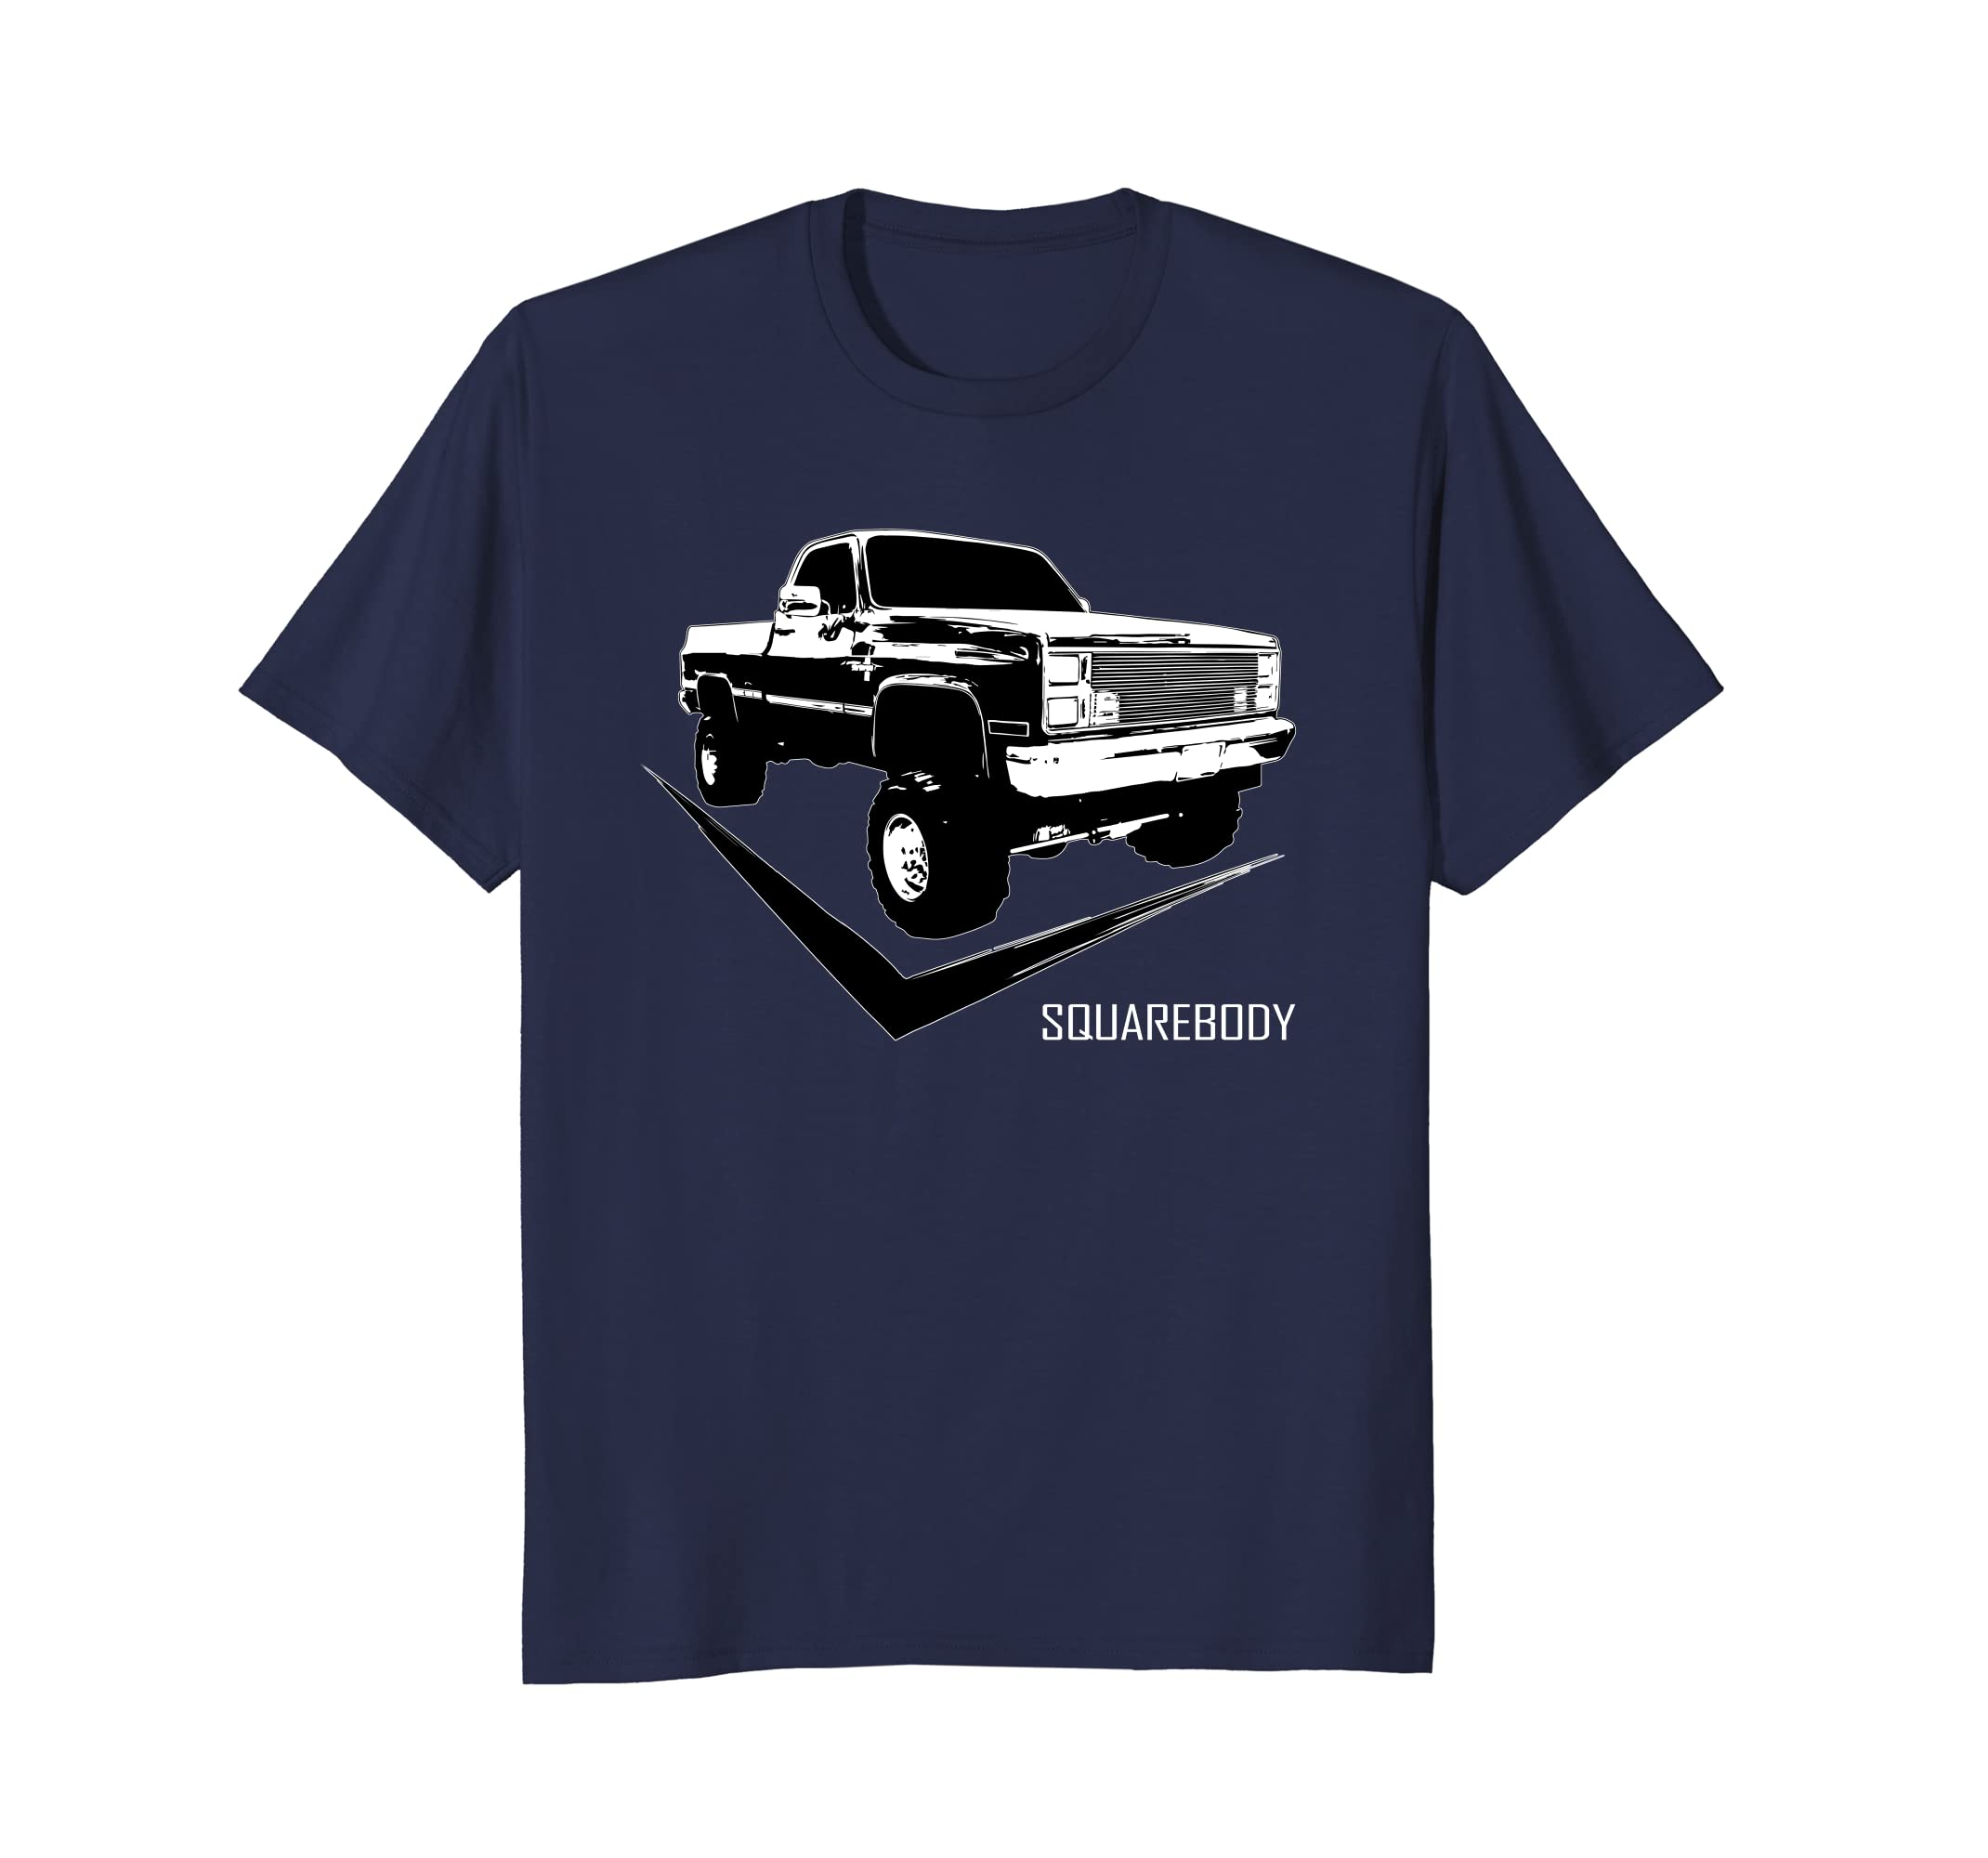 Squarebody T Shirt With Classic Square Body Truck-Teesml